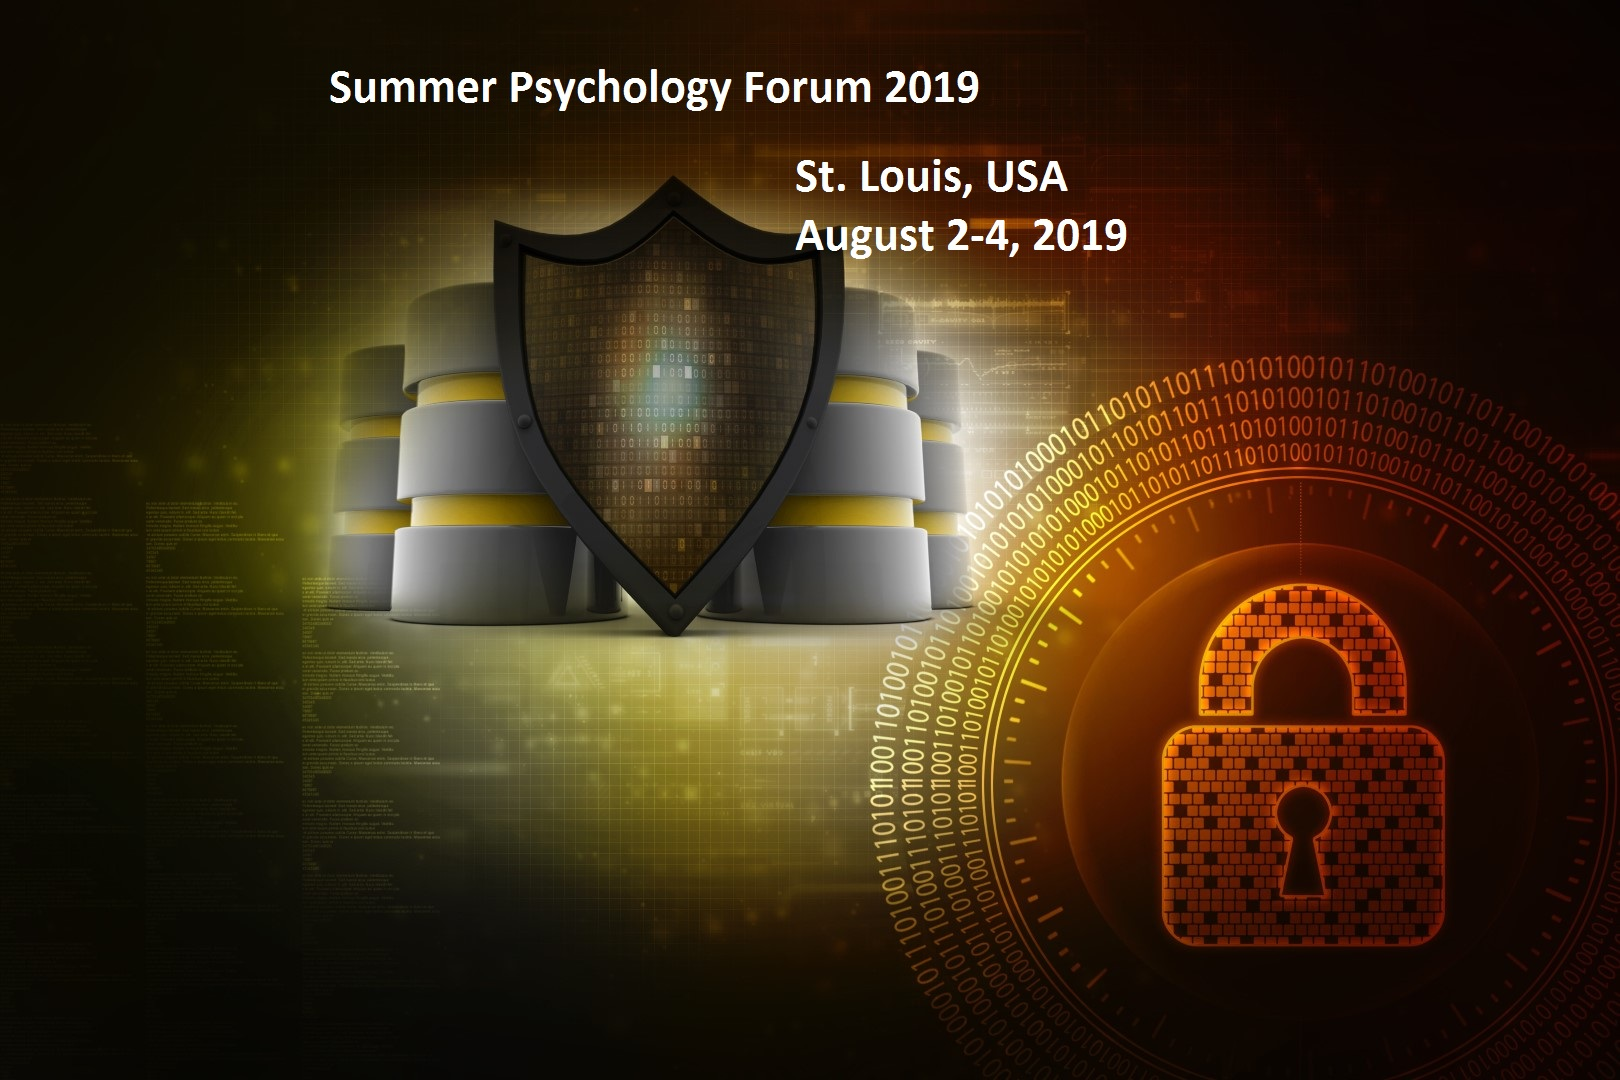 Summer Psychology Forum 2019